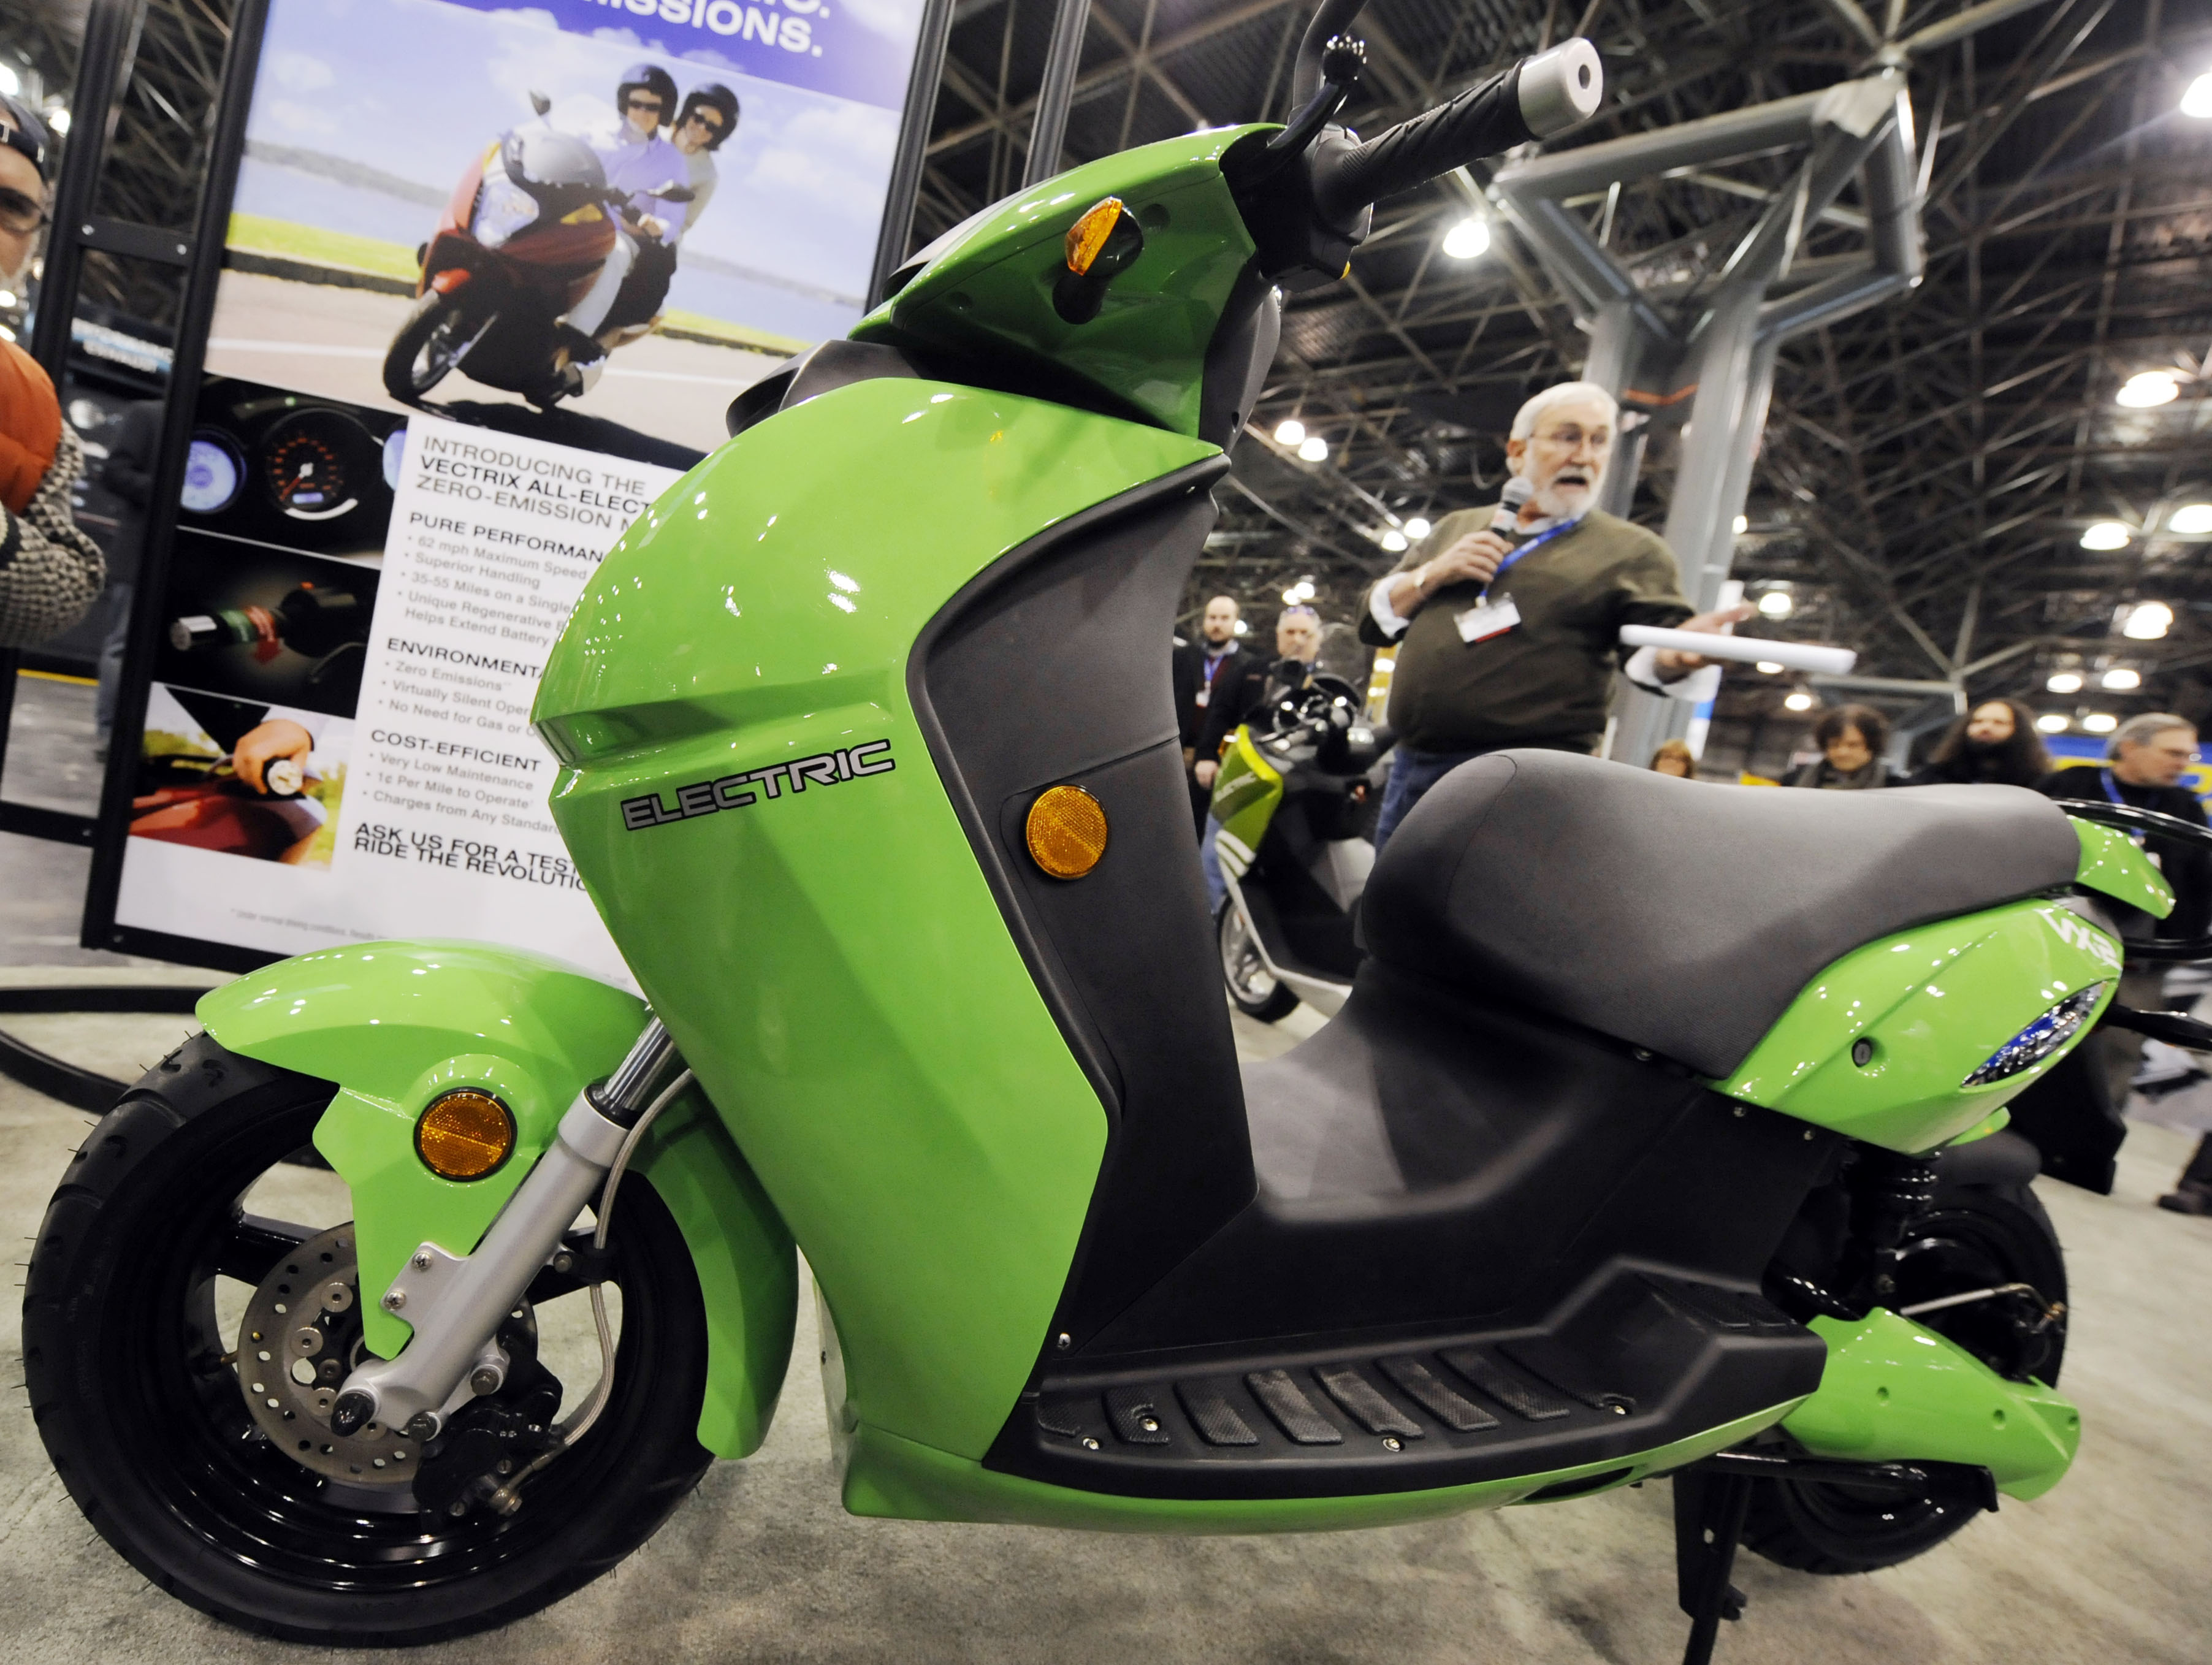 Motorcycle makers downshift   The Spokesman-Review